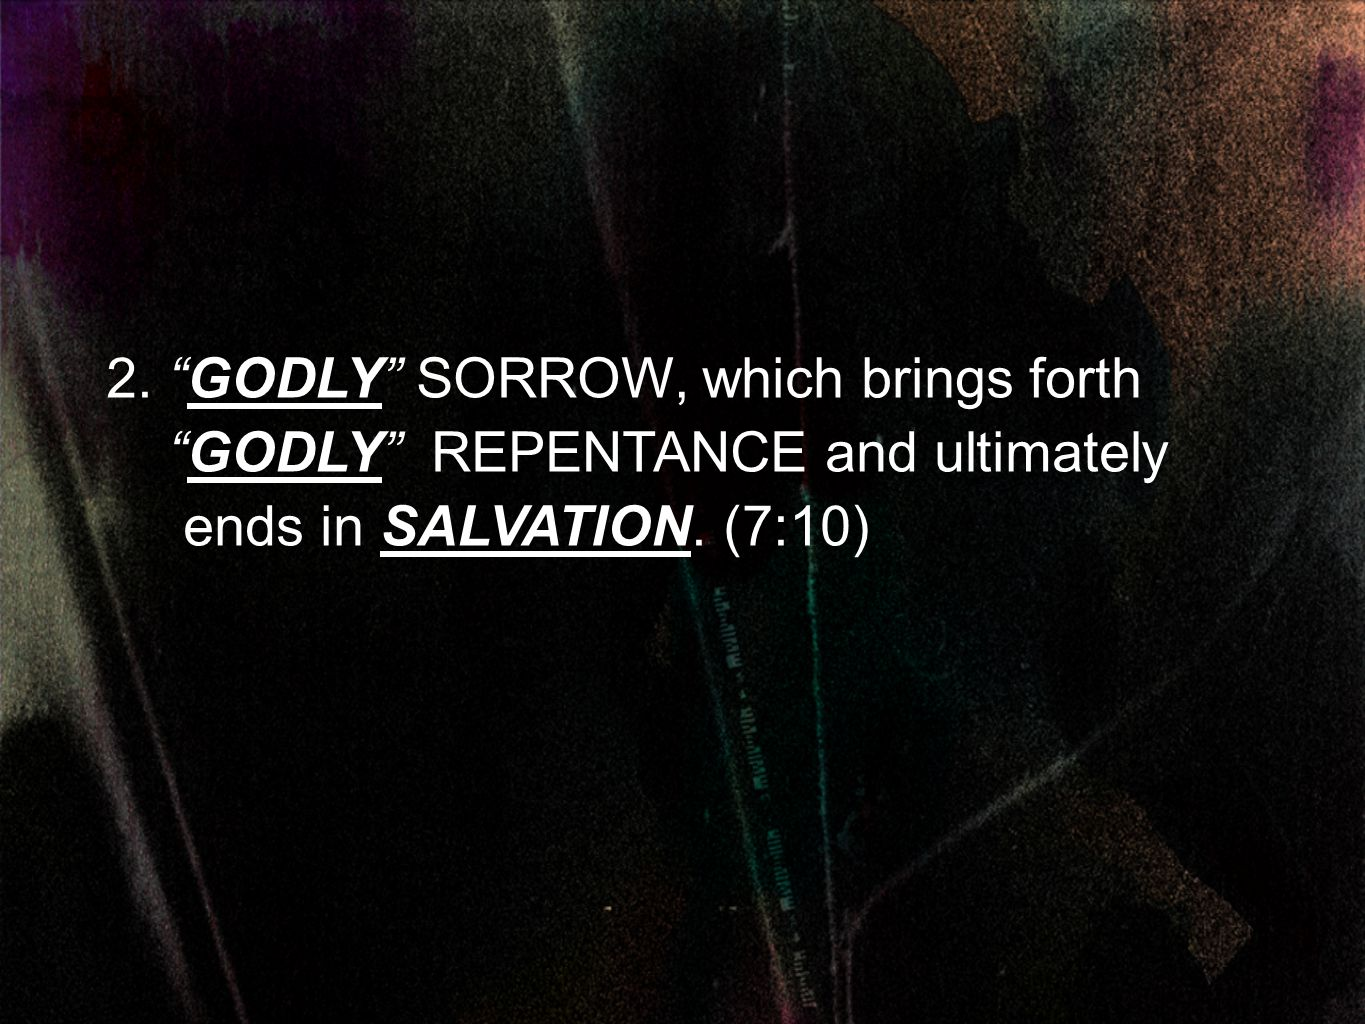 2. GODLY SORROW, which brings forth GODLY REPENTANCE and ultimately ends in SALVATION. (7:10)